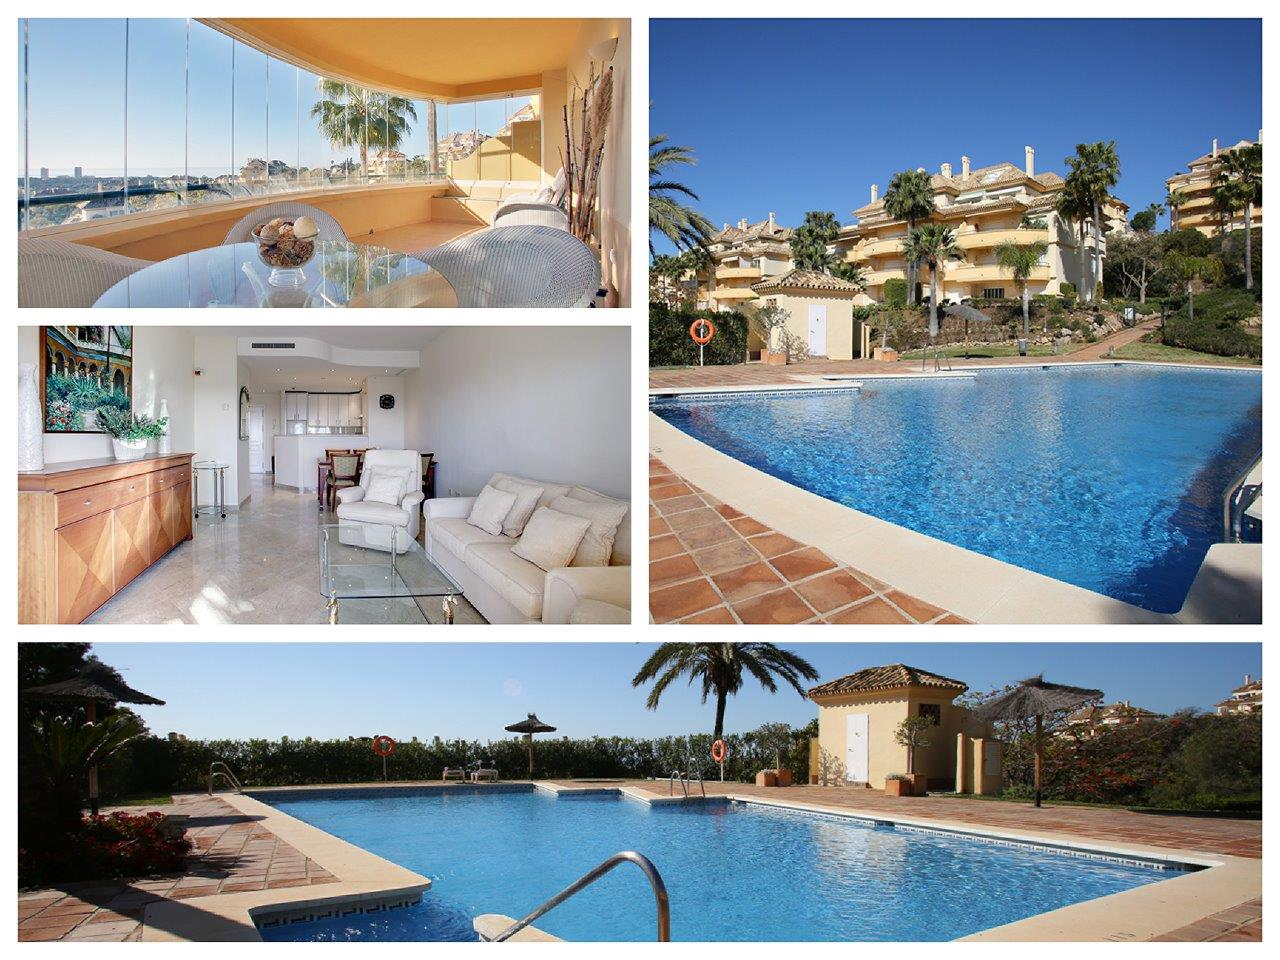 Appartement in Elviria Hills te koop (Marbella)